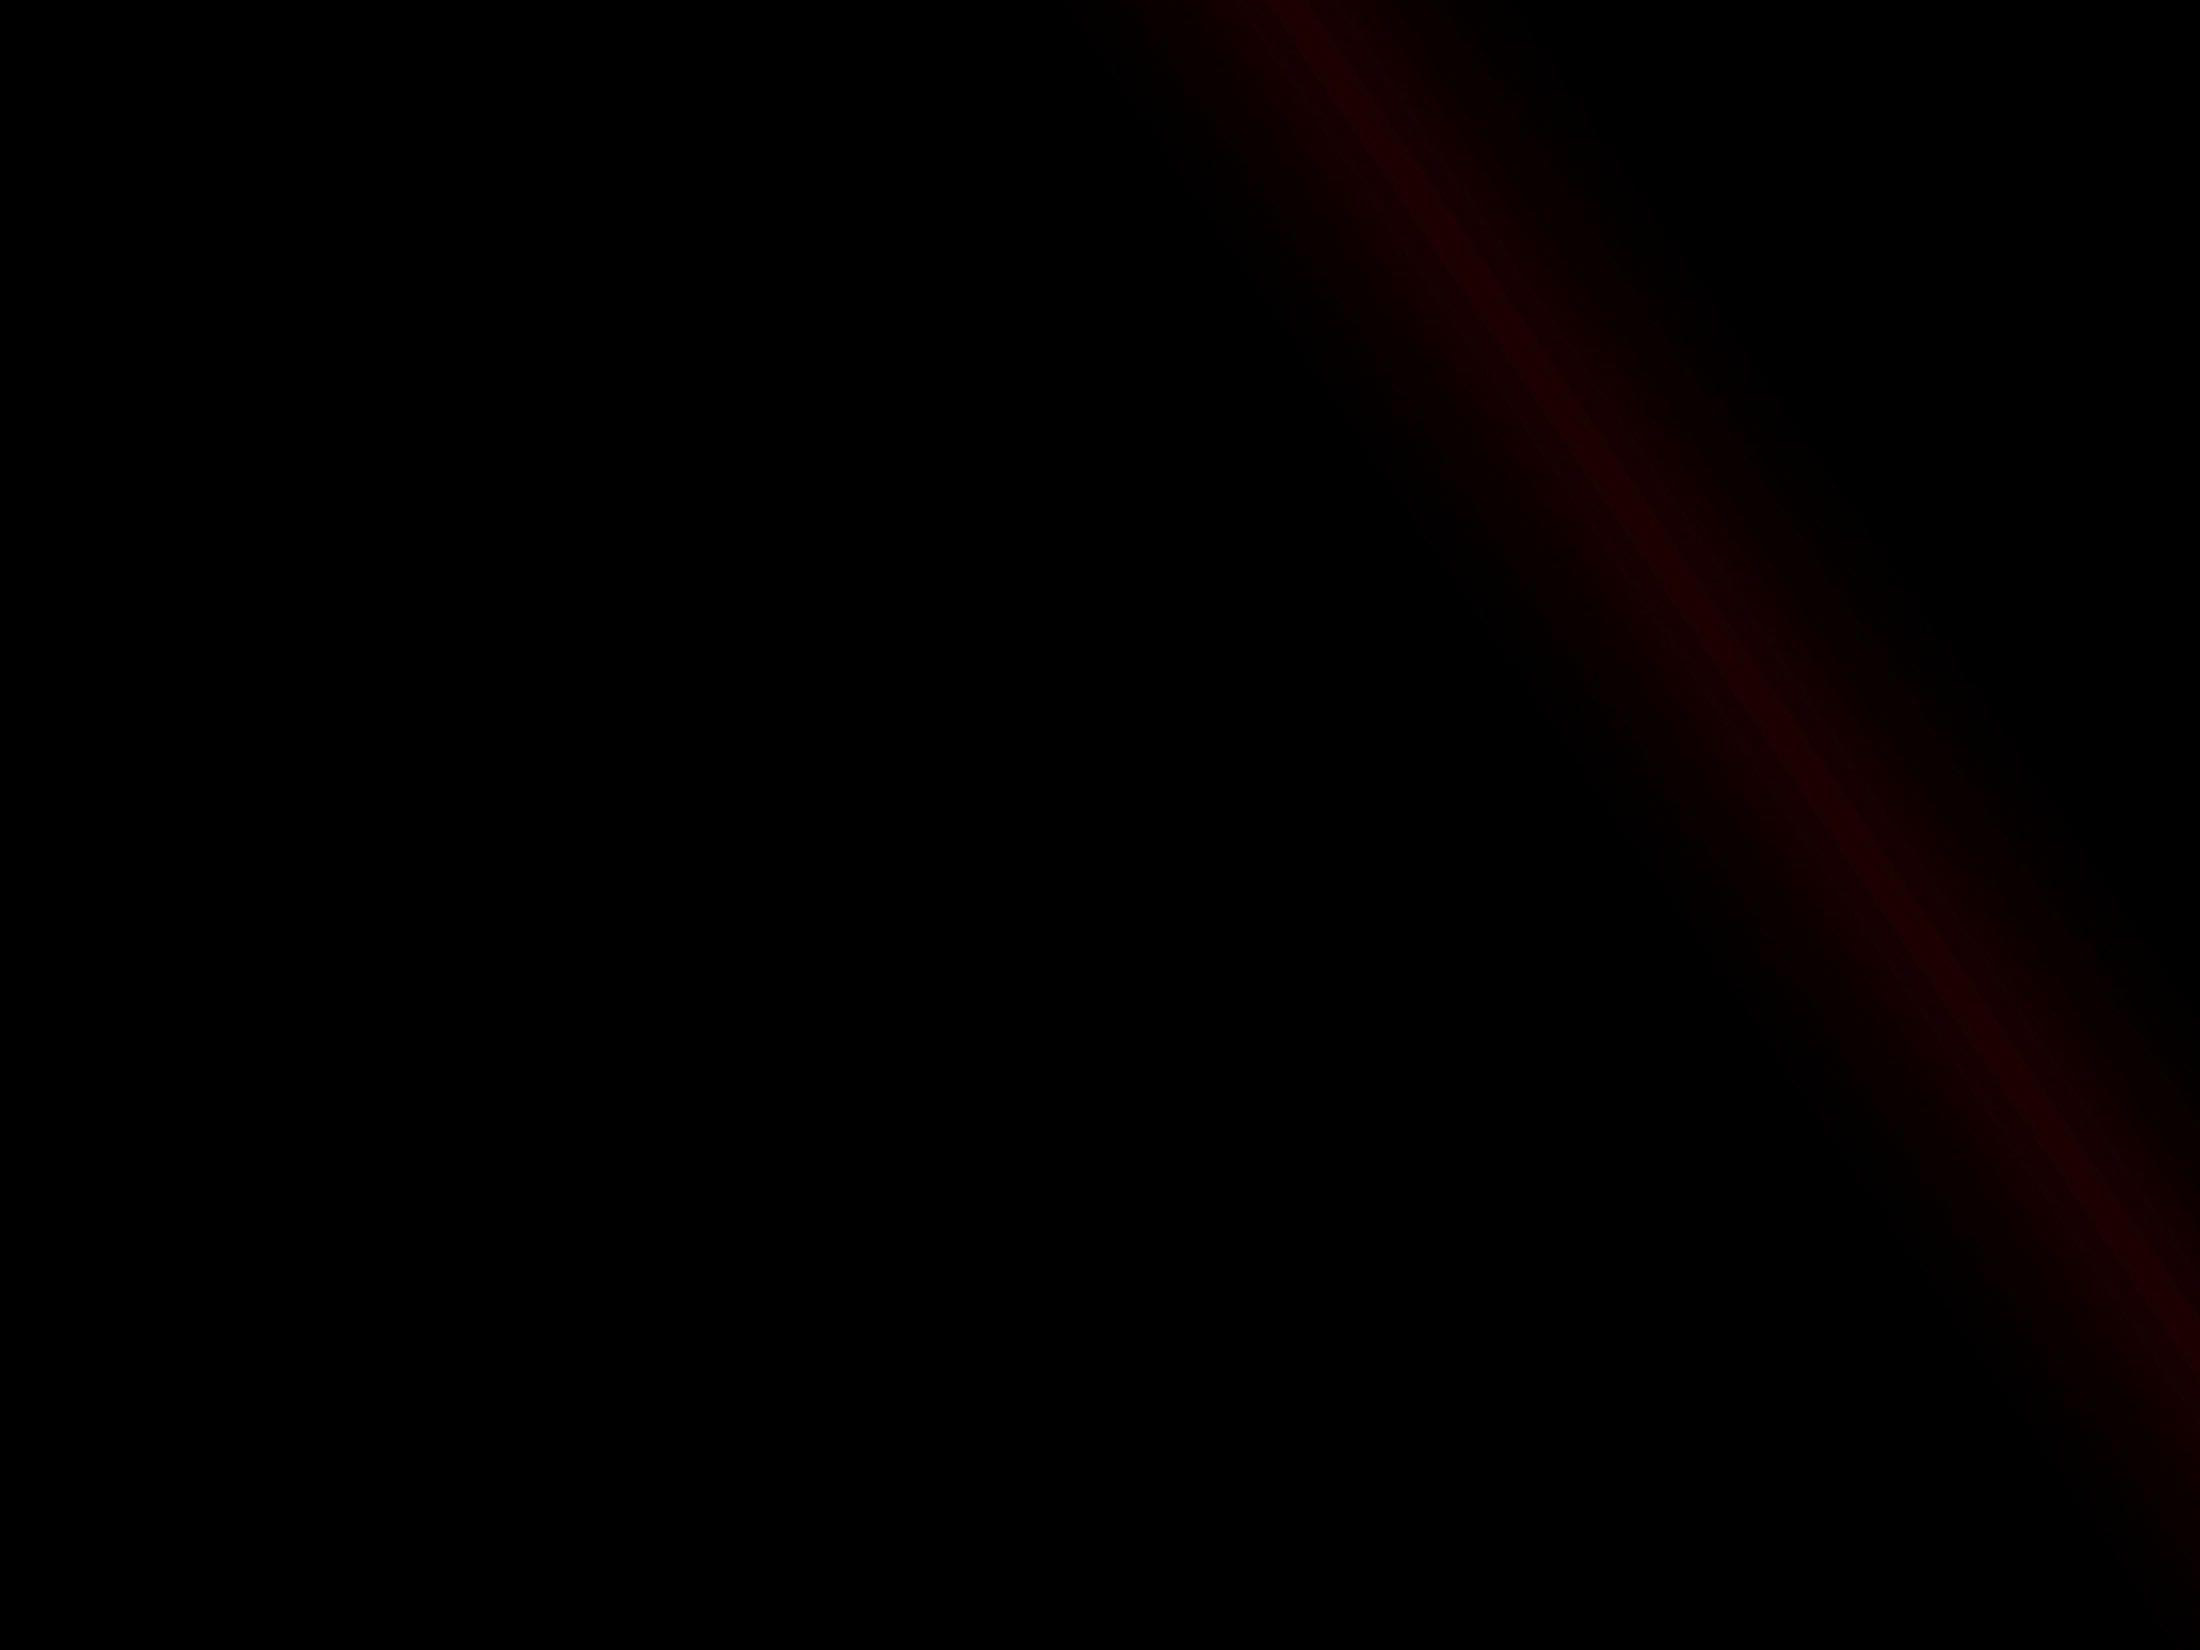 Cool Black Backgrounds - Wallpaper Cave